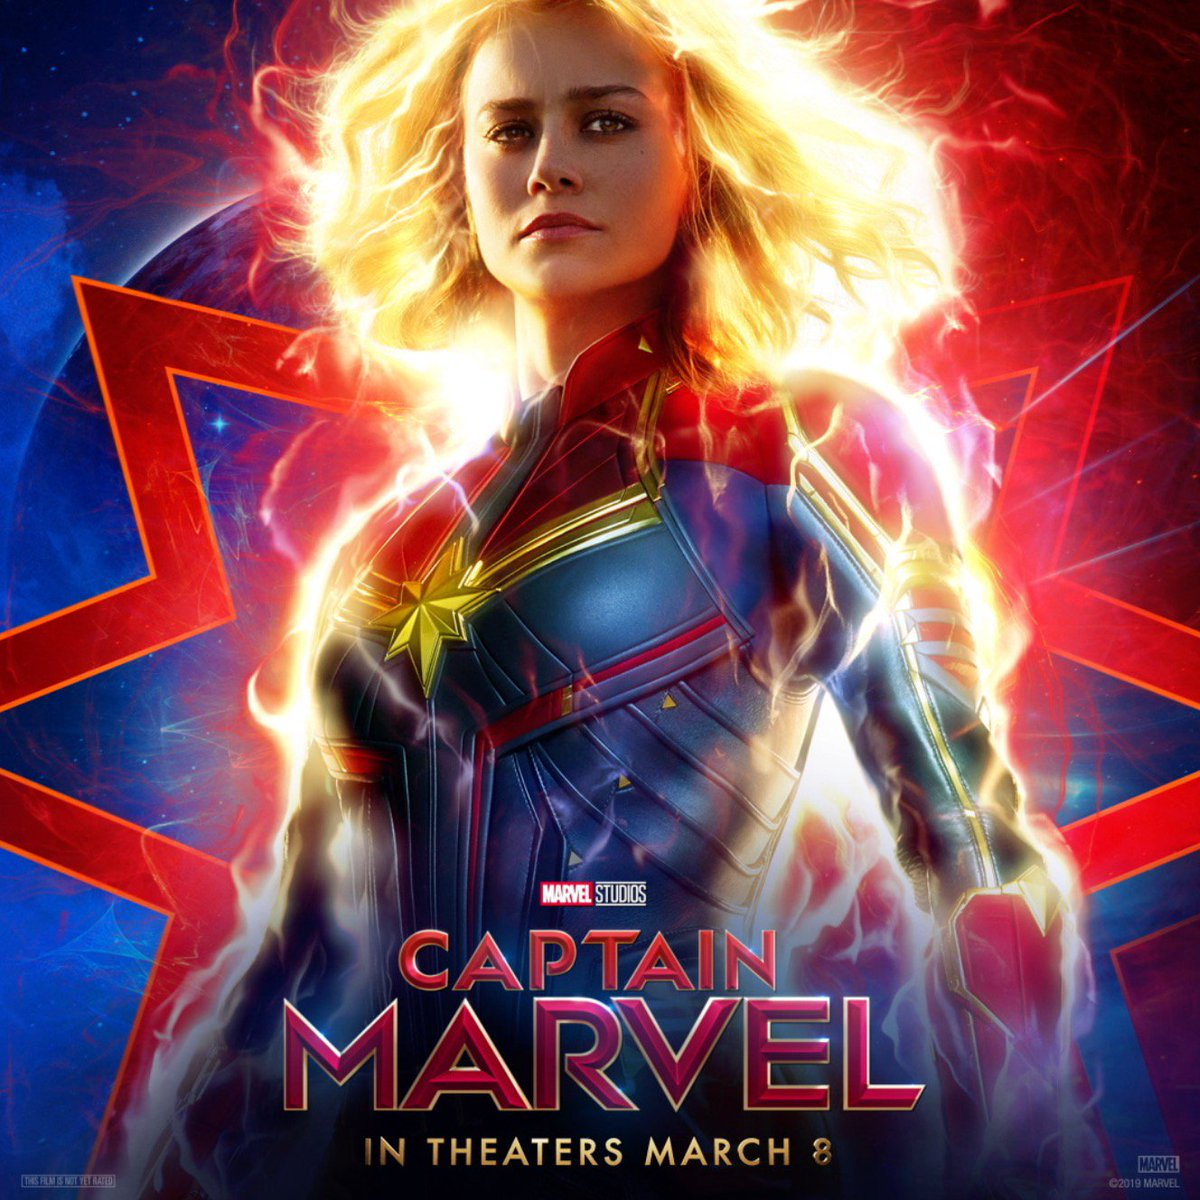 Are you ready, 2019? #CaptainMarvel